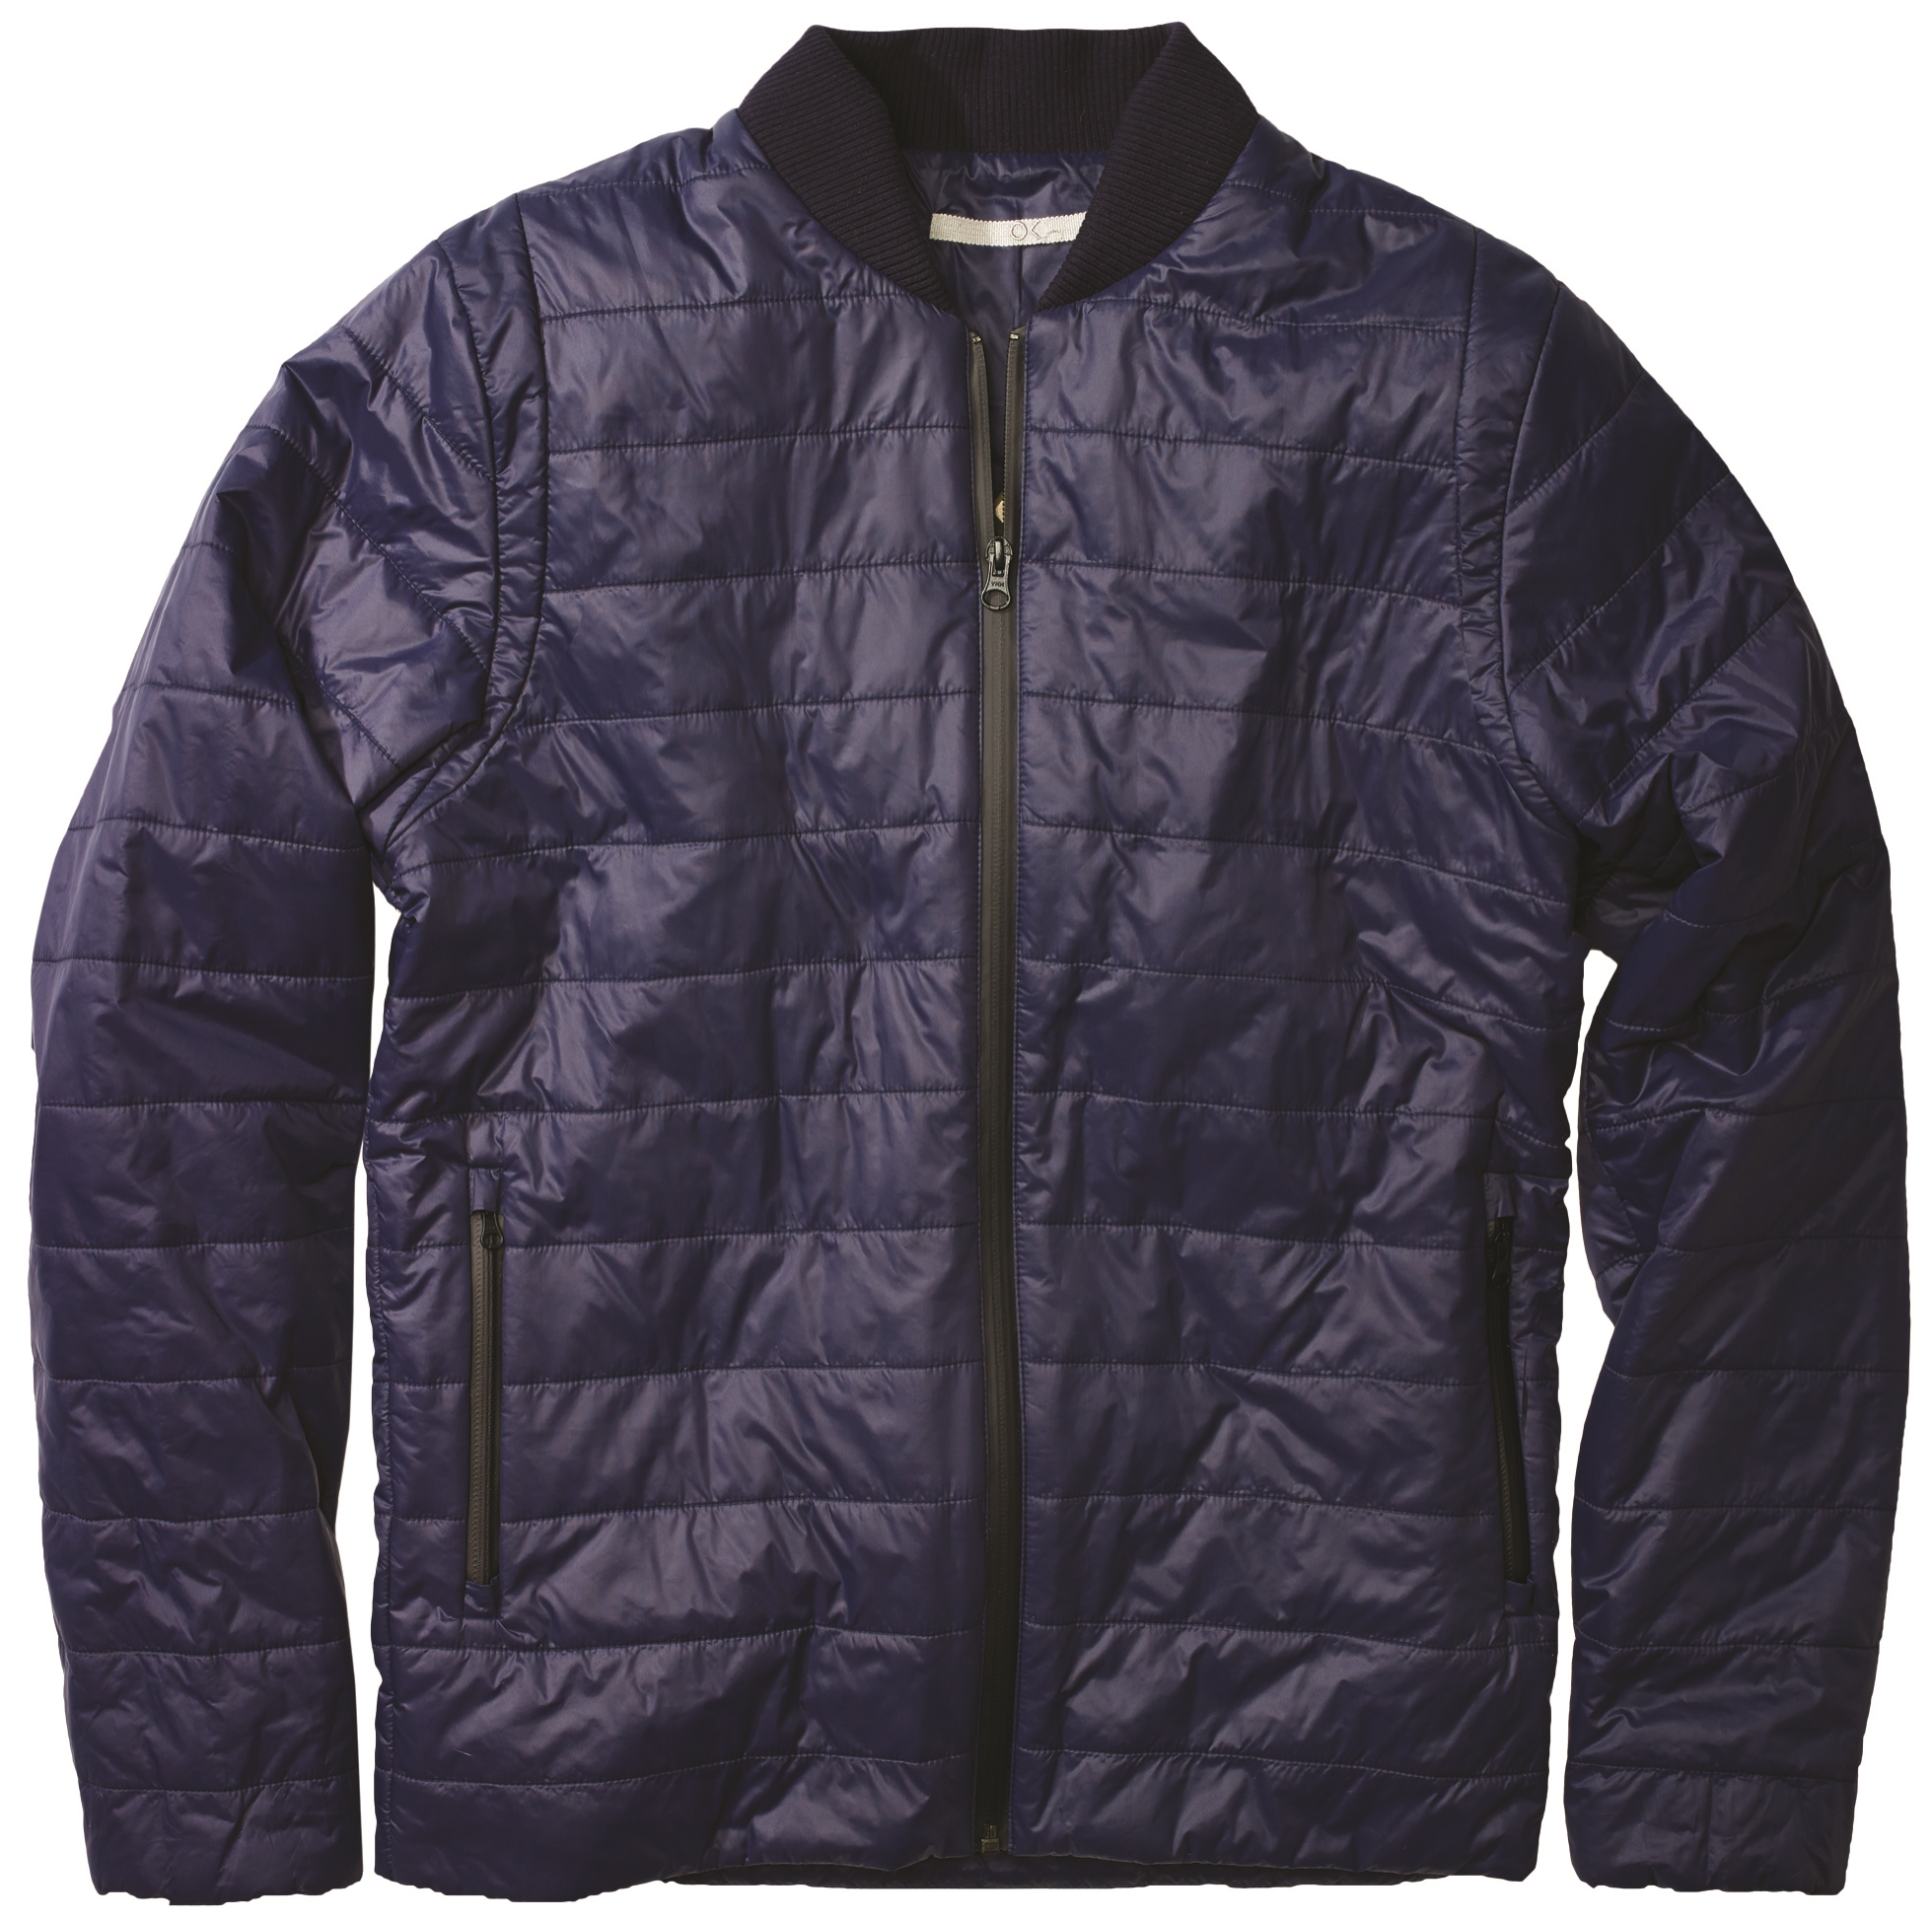 Outerknown Evolution Puffer Jacket, $385